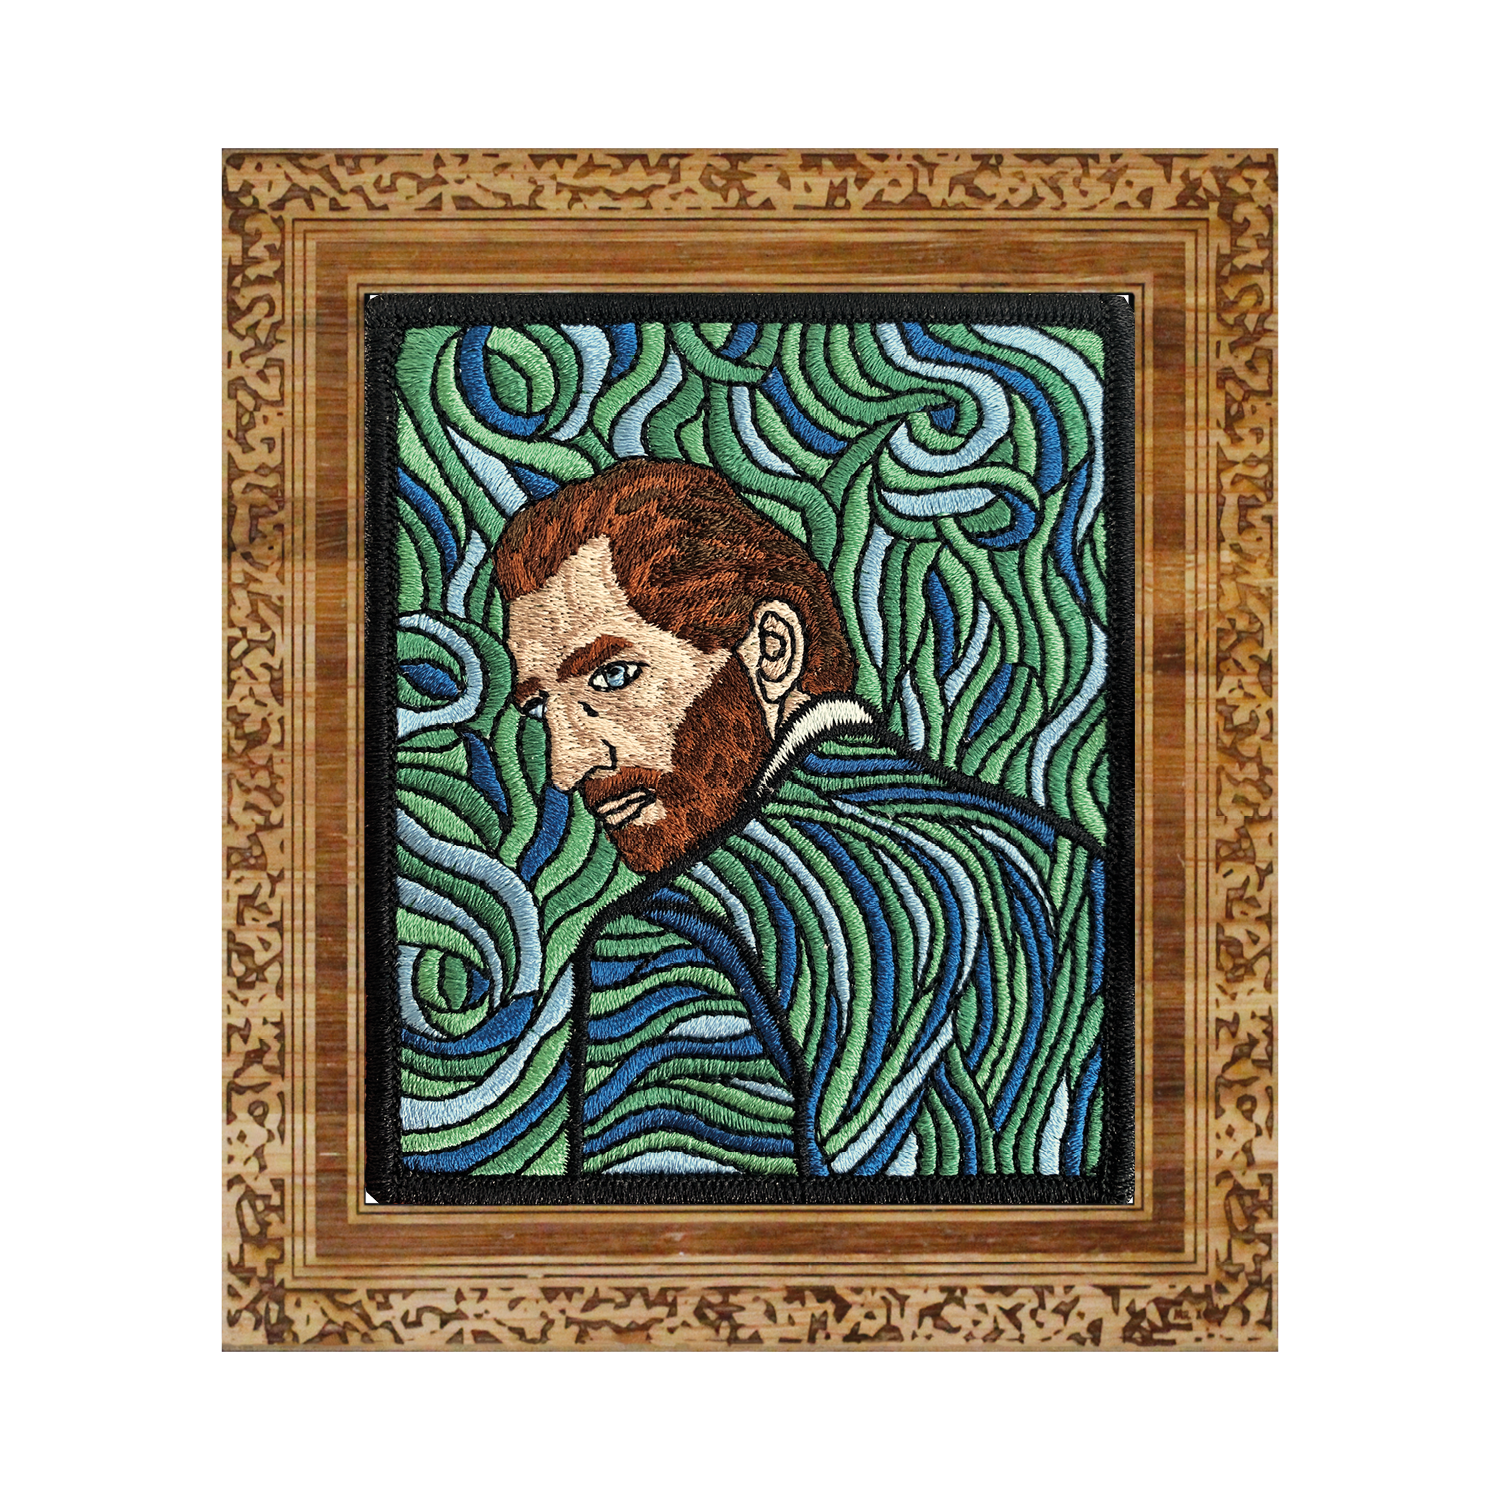 Vincent Van Gogh - Self-Portrait - Revisited Patch